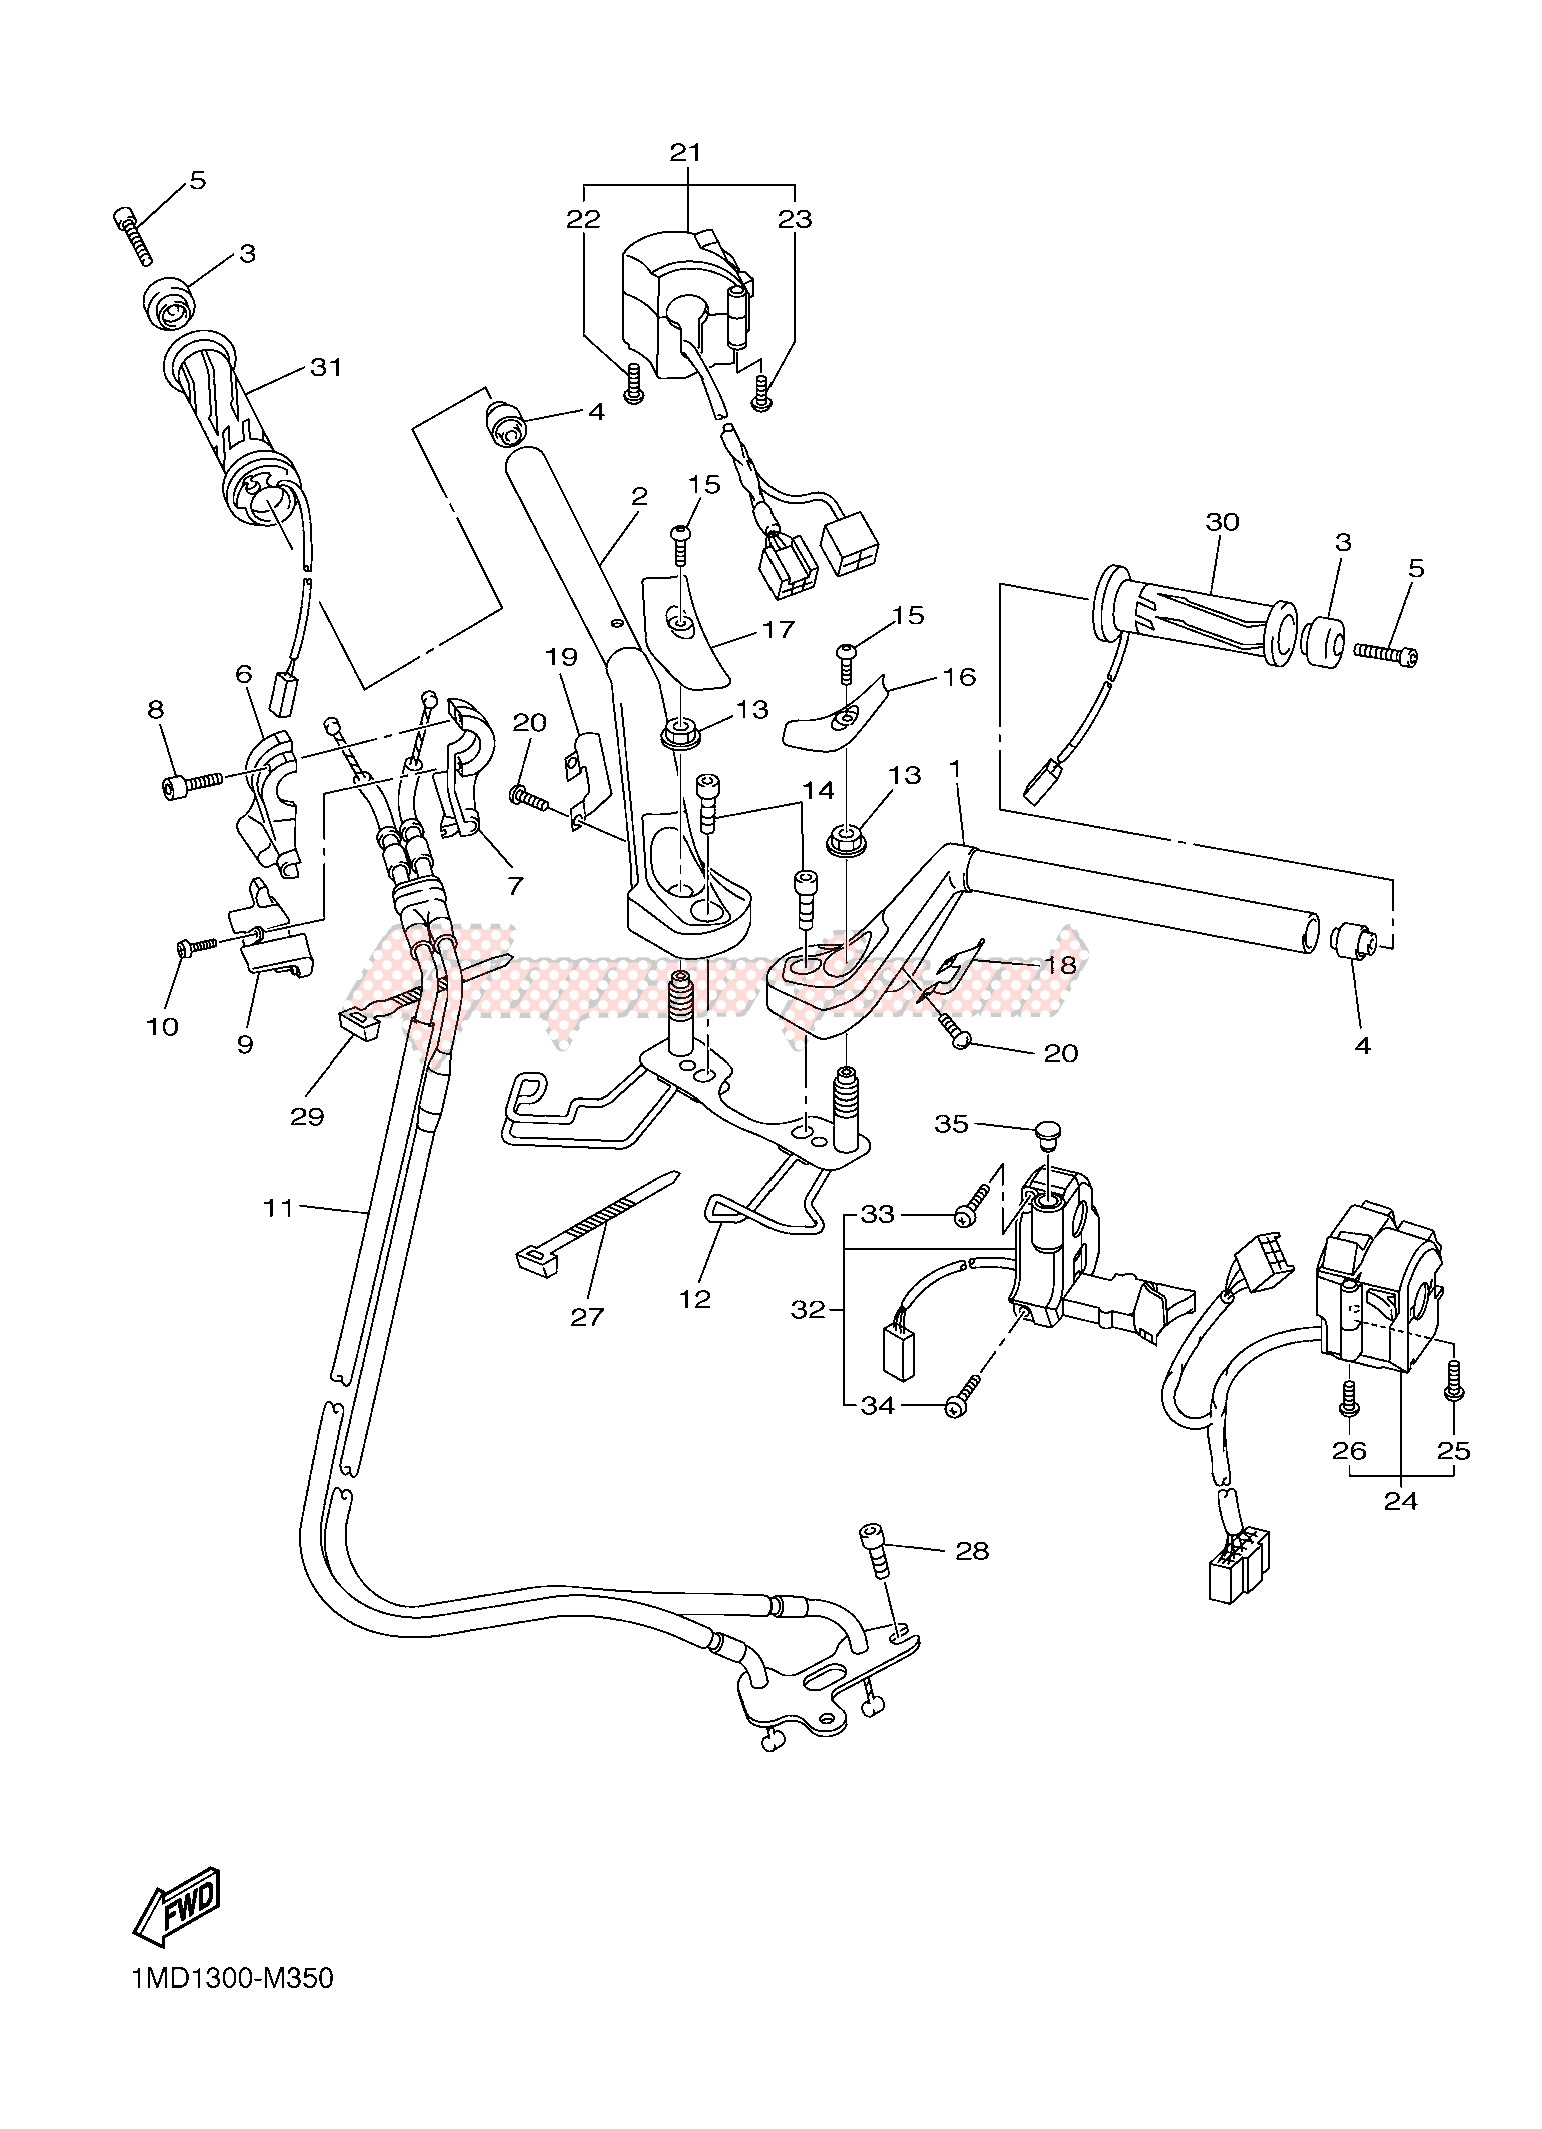 STEERING HANDLE & CABLE blueprint